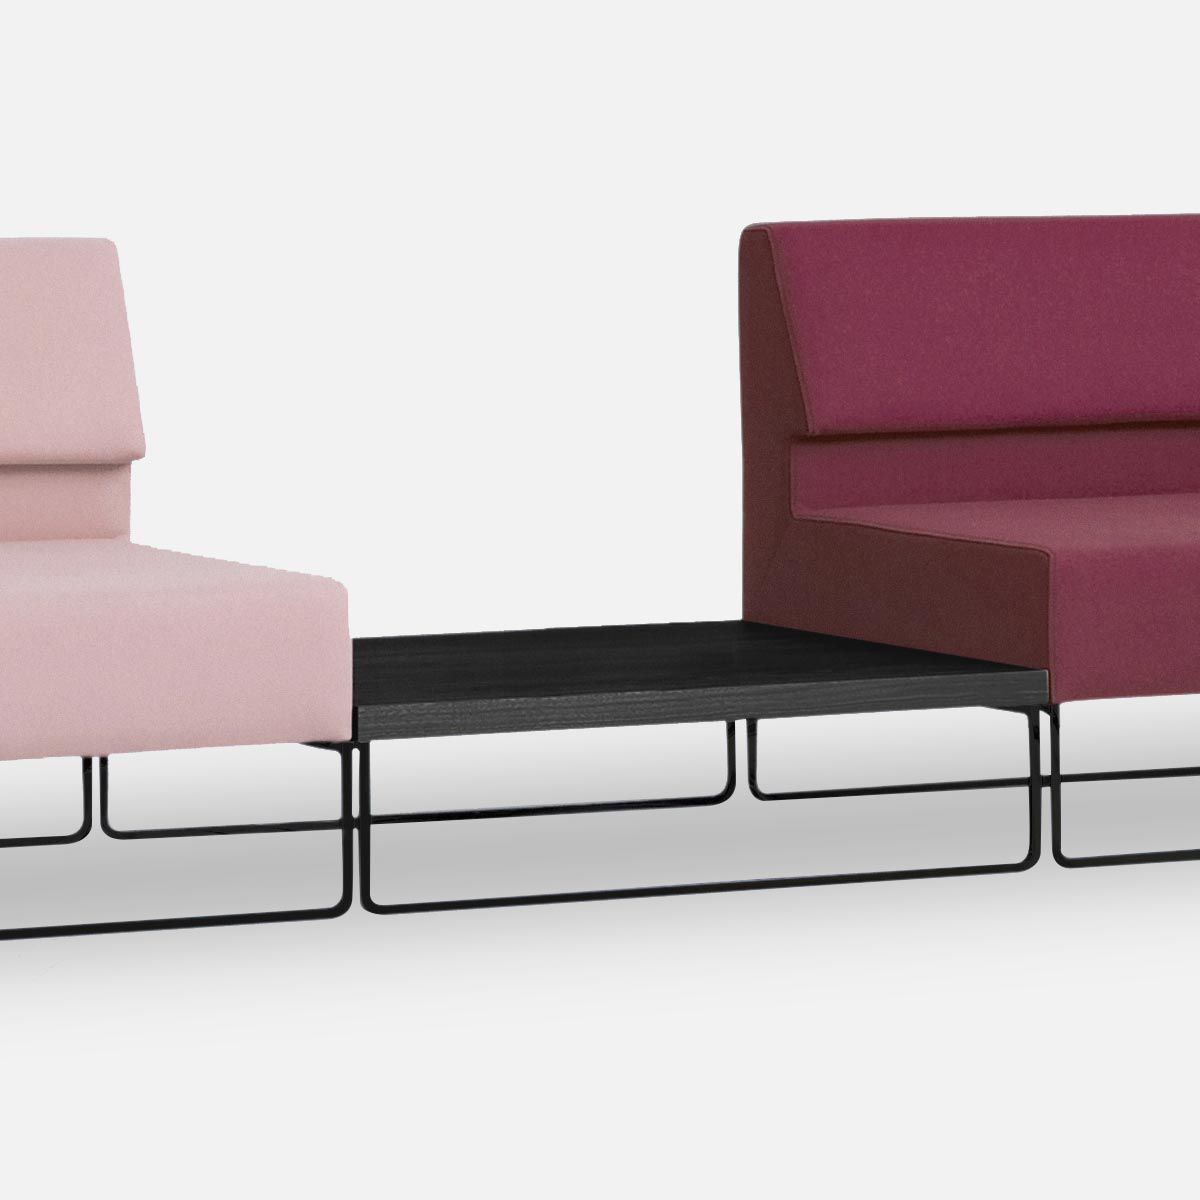 Corner sofa modular contemporary leather COUCH by Morten